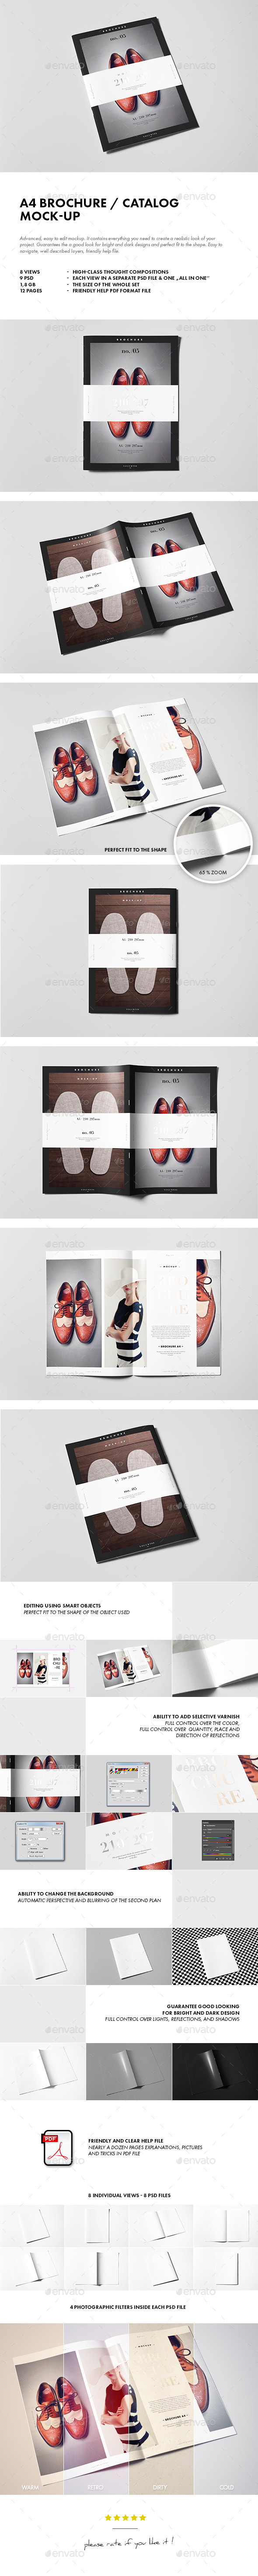 GraphicRiver A4 Brochure Catalog Booklet Mock-up 10021649